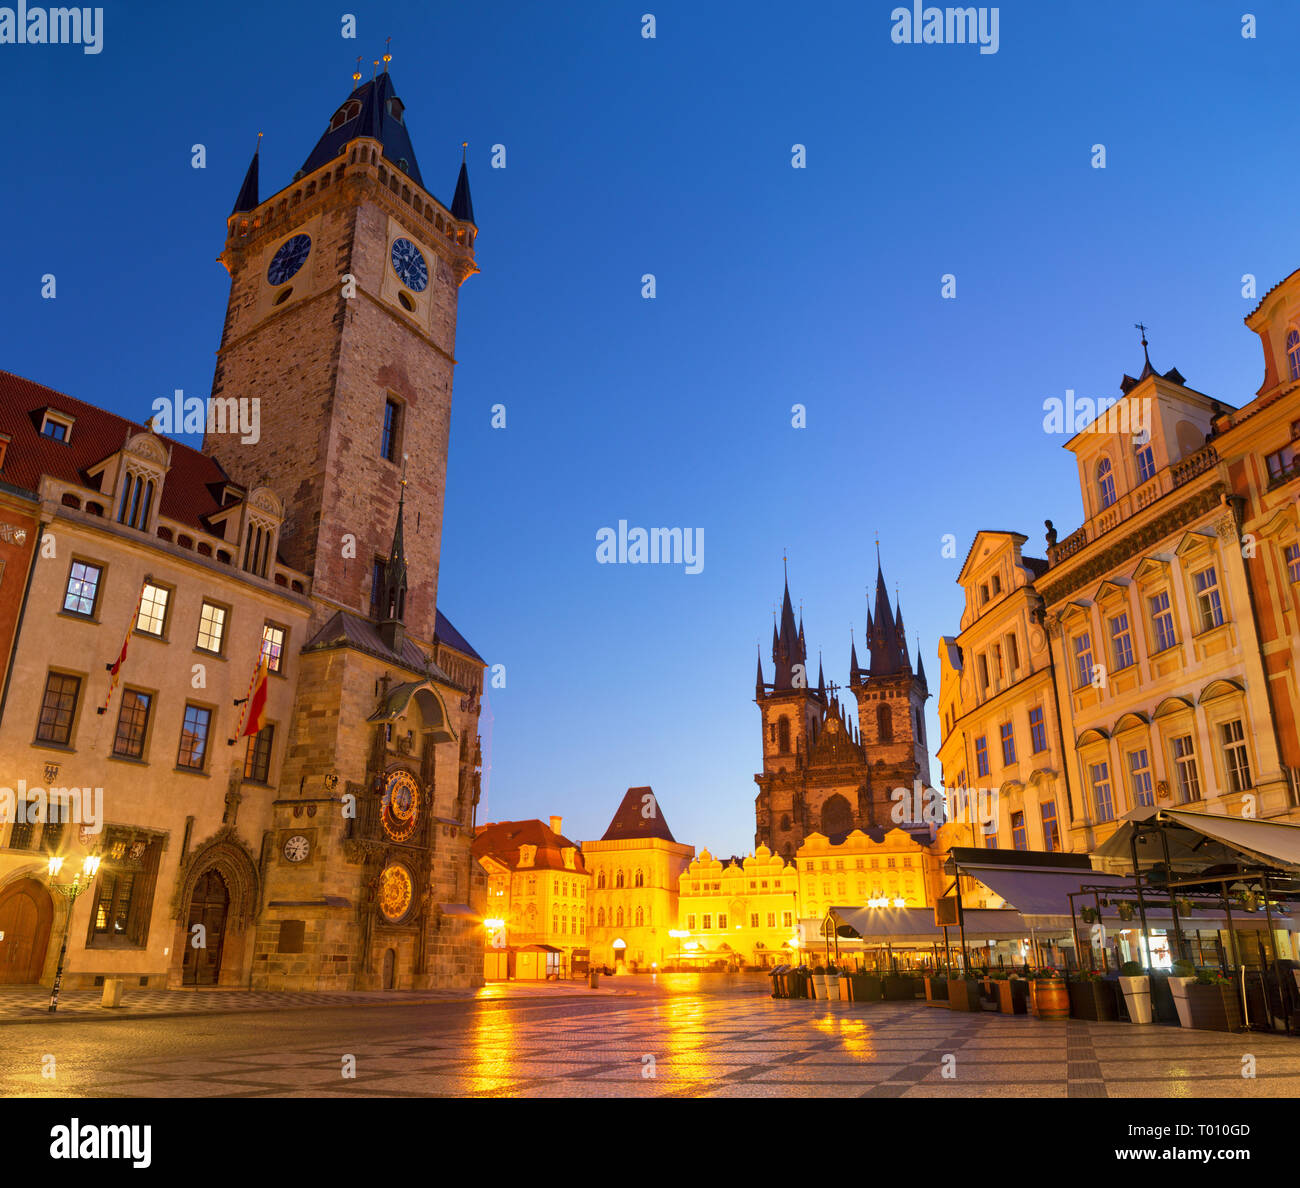 Prague - The Old Town hall, Staromestske square and Our Lady before Týn church at dusk. - Stock Image